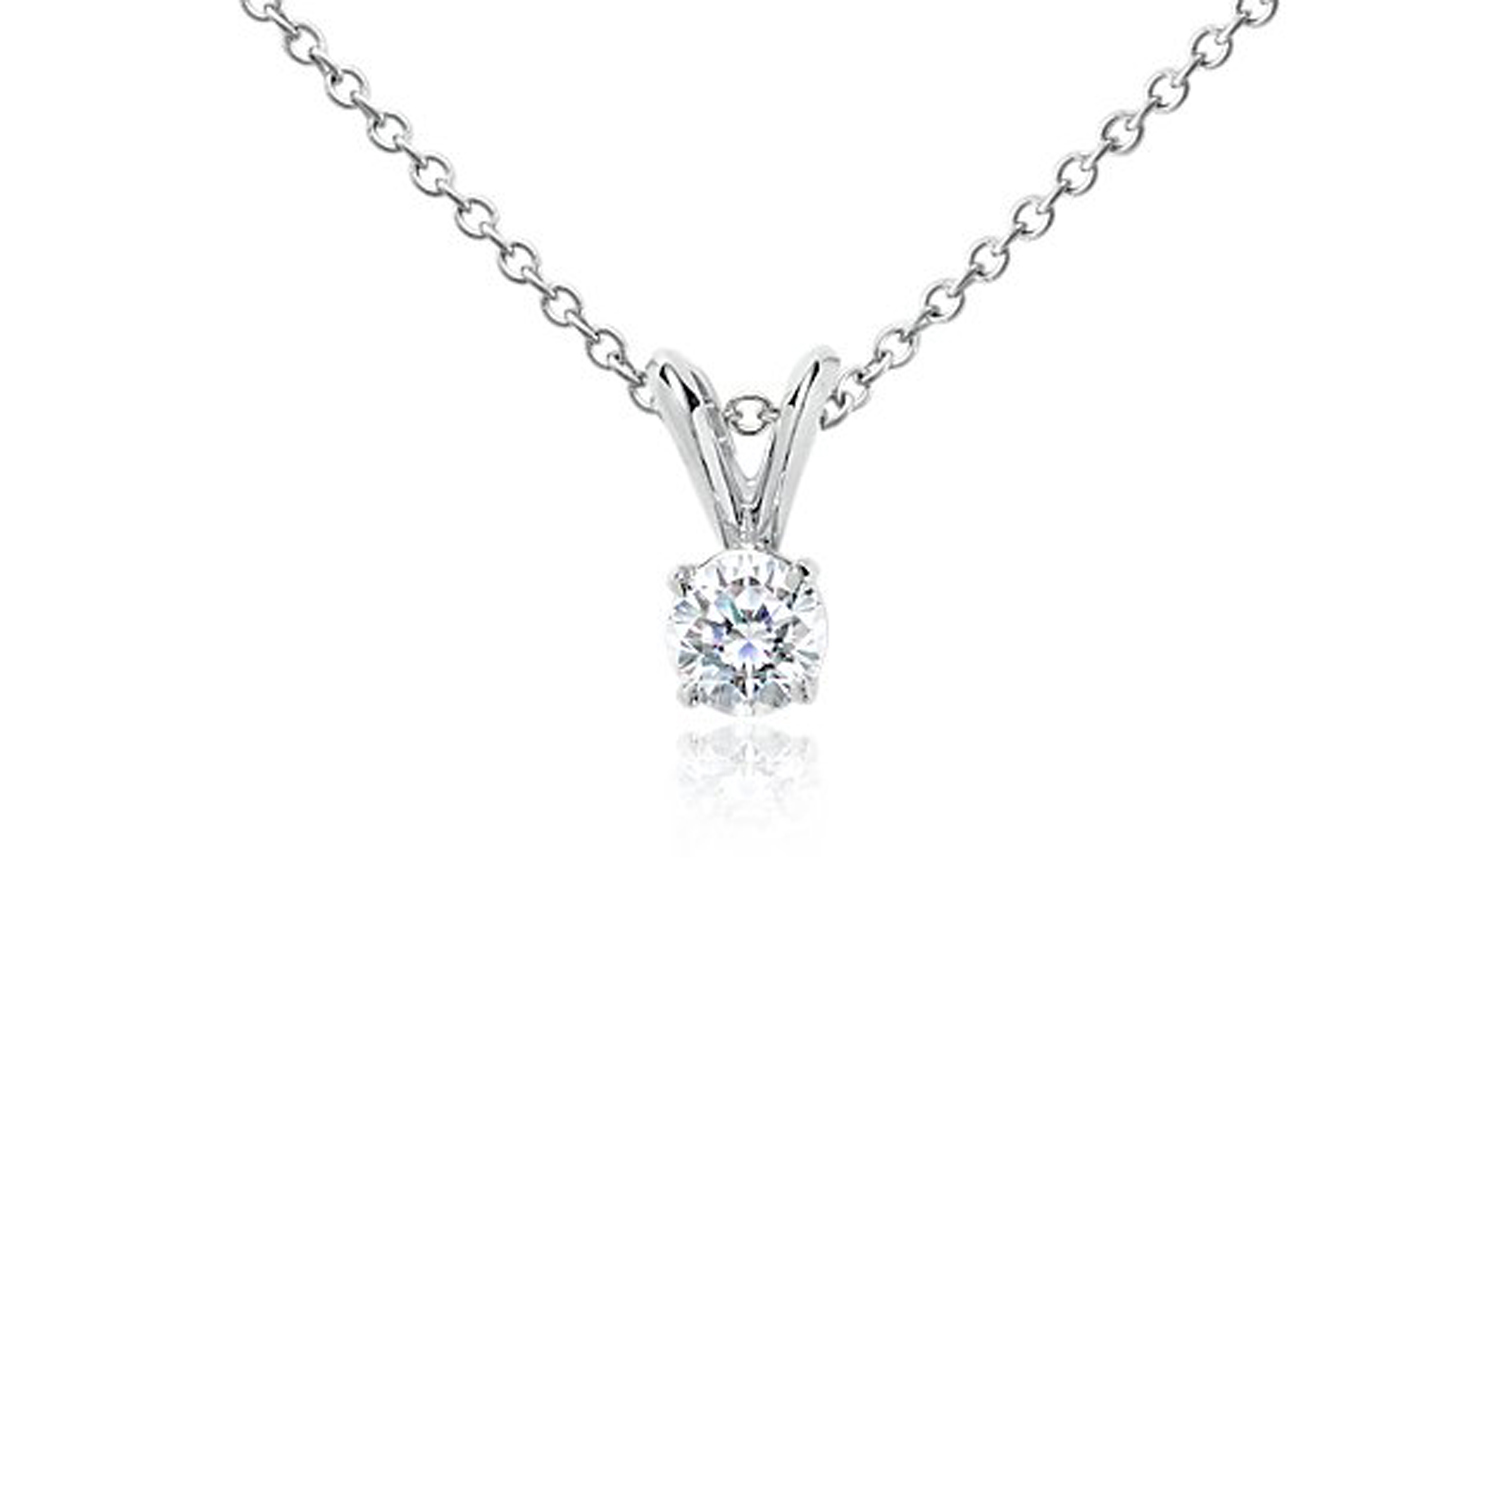 PEND50 Diamond Pendant .50 Carat weight Minimum-White gold -SI2-G in color-With certificate